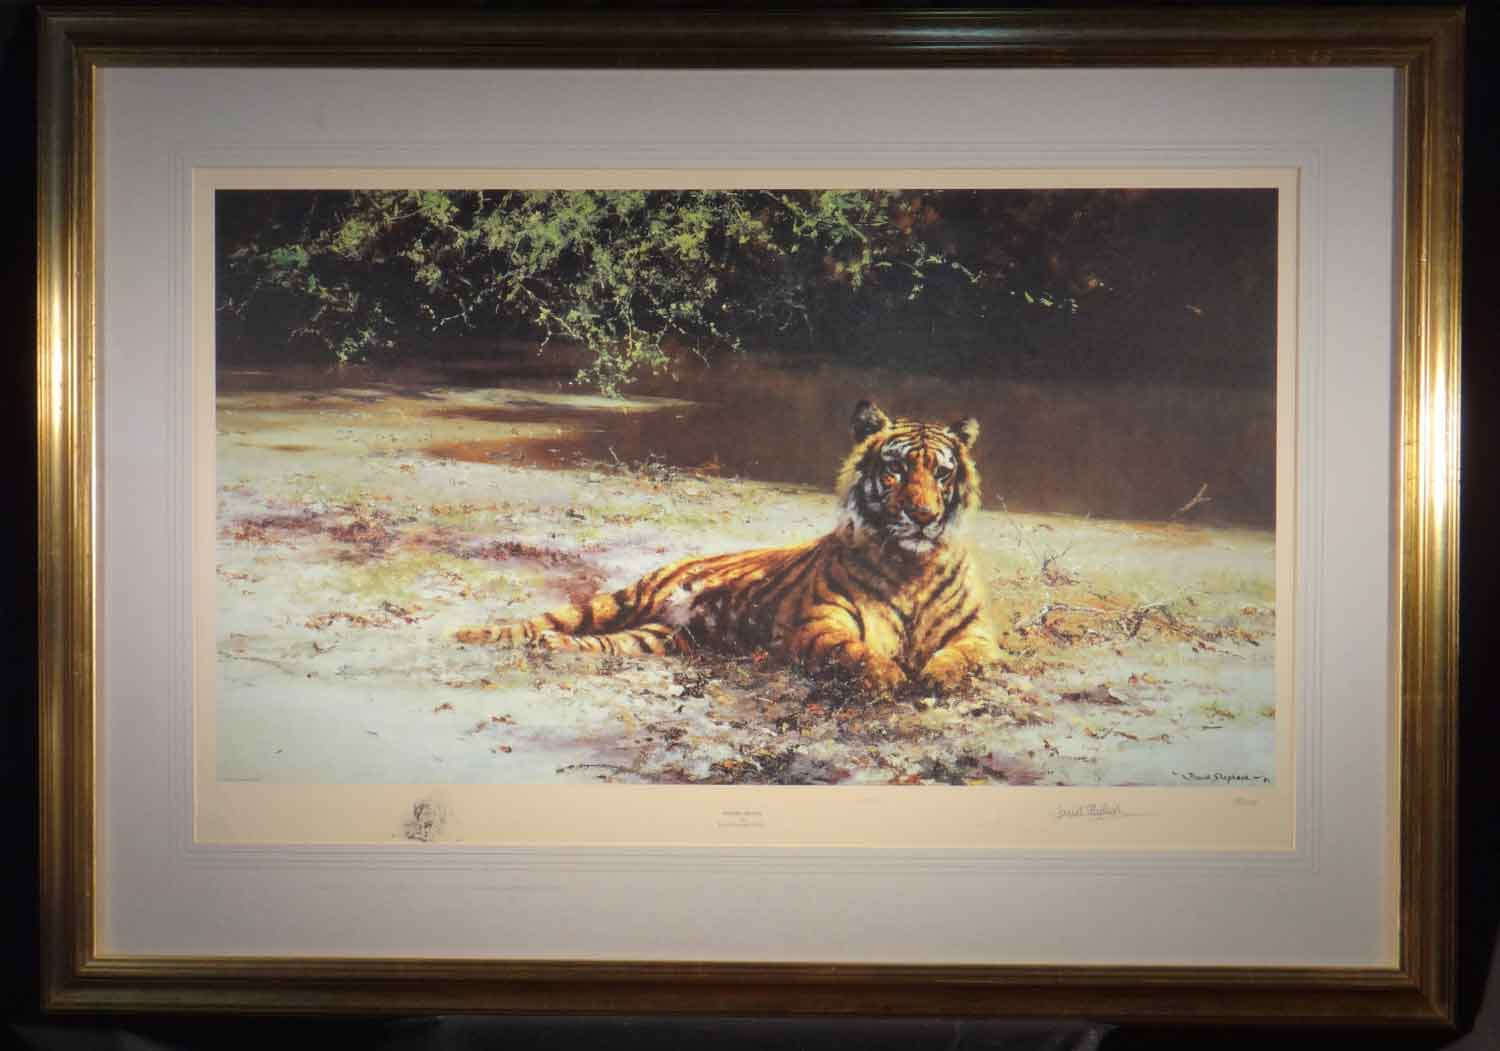 david shepherd, indian siesta, signed limited edition print